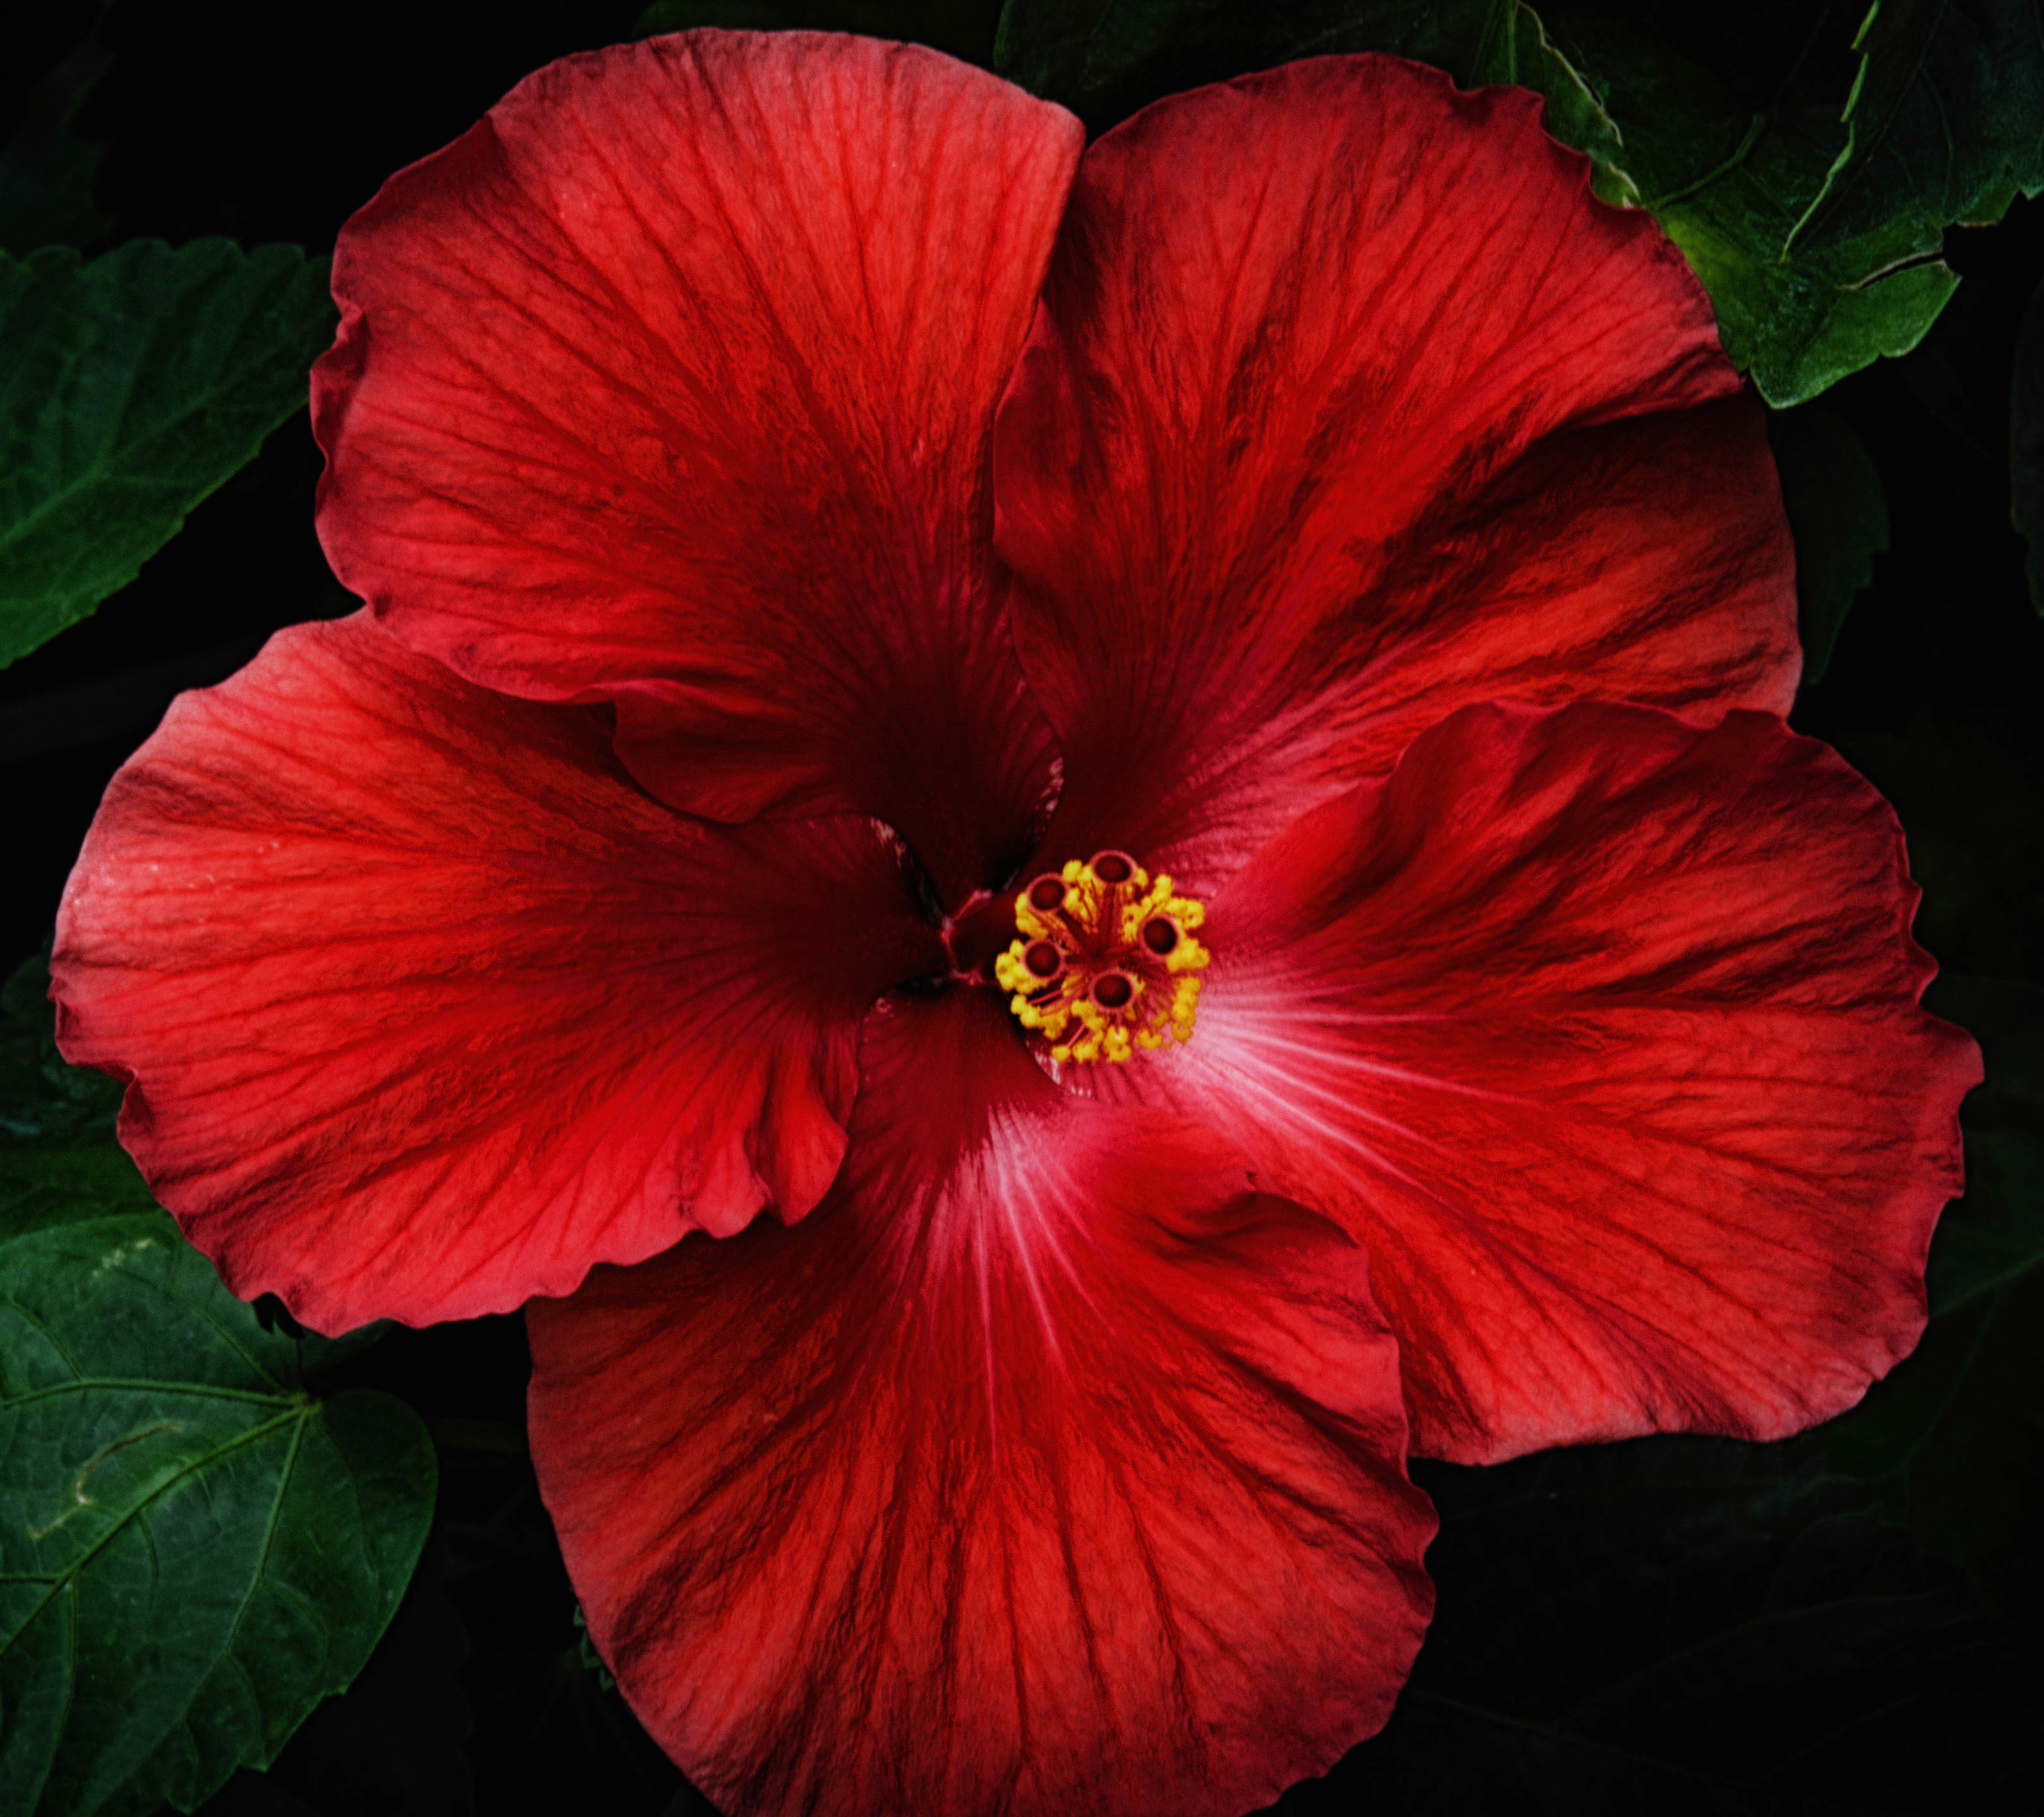 EarthHibiscus 2880x2560 Wallpaper ID 664633   Mobile Abyss 2880x2560